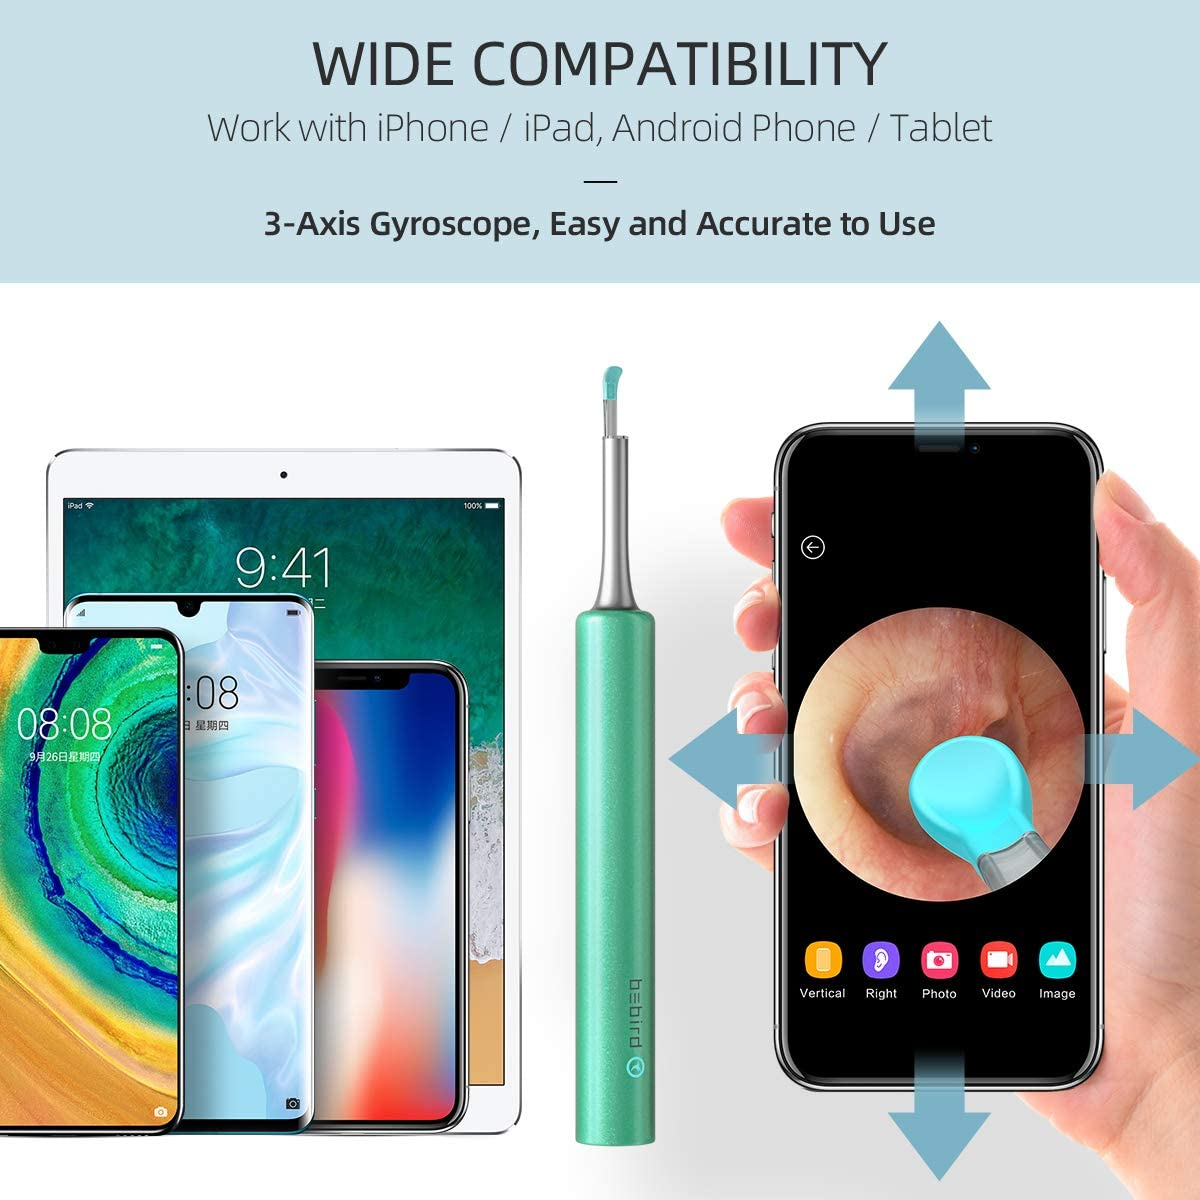 Waterproof 3-Axis Gyroscope Earwax Removal Tool for Kids Adults Work with iOS Android Phone Tablet White BEBIRD WiFi Otoscope 3.9mm Ear Cleaning Endoscope HD 1080P Wireless Ear Inspection Camera